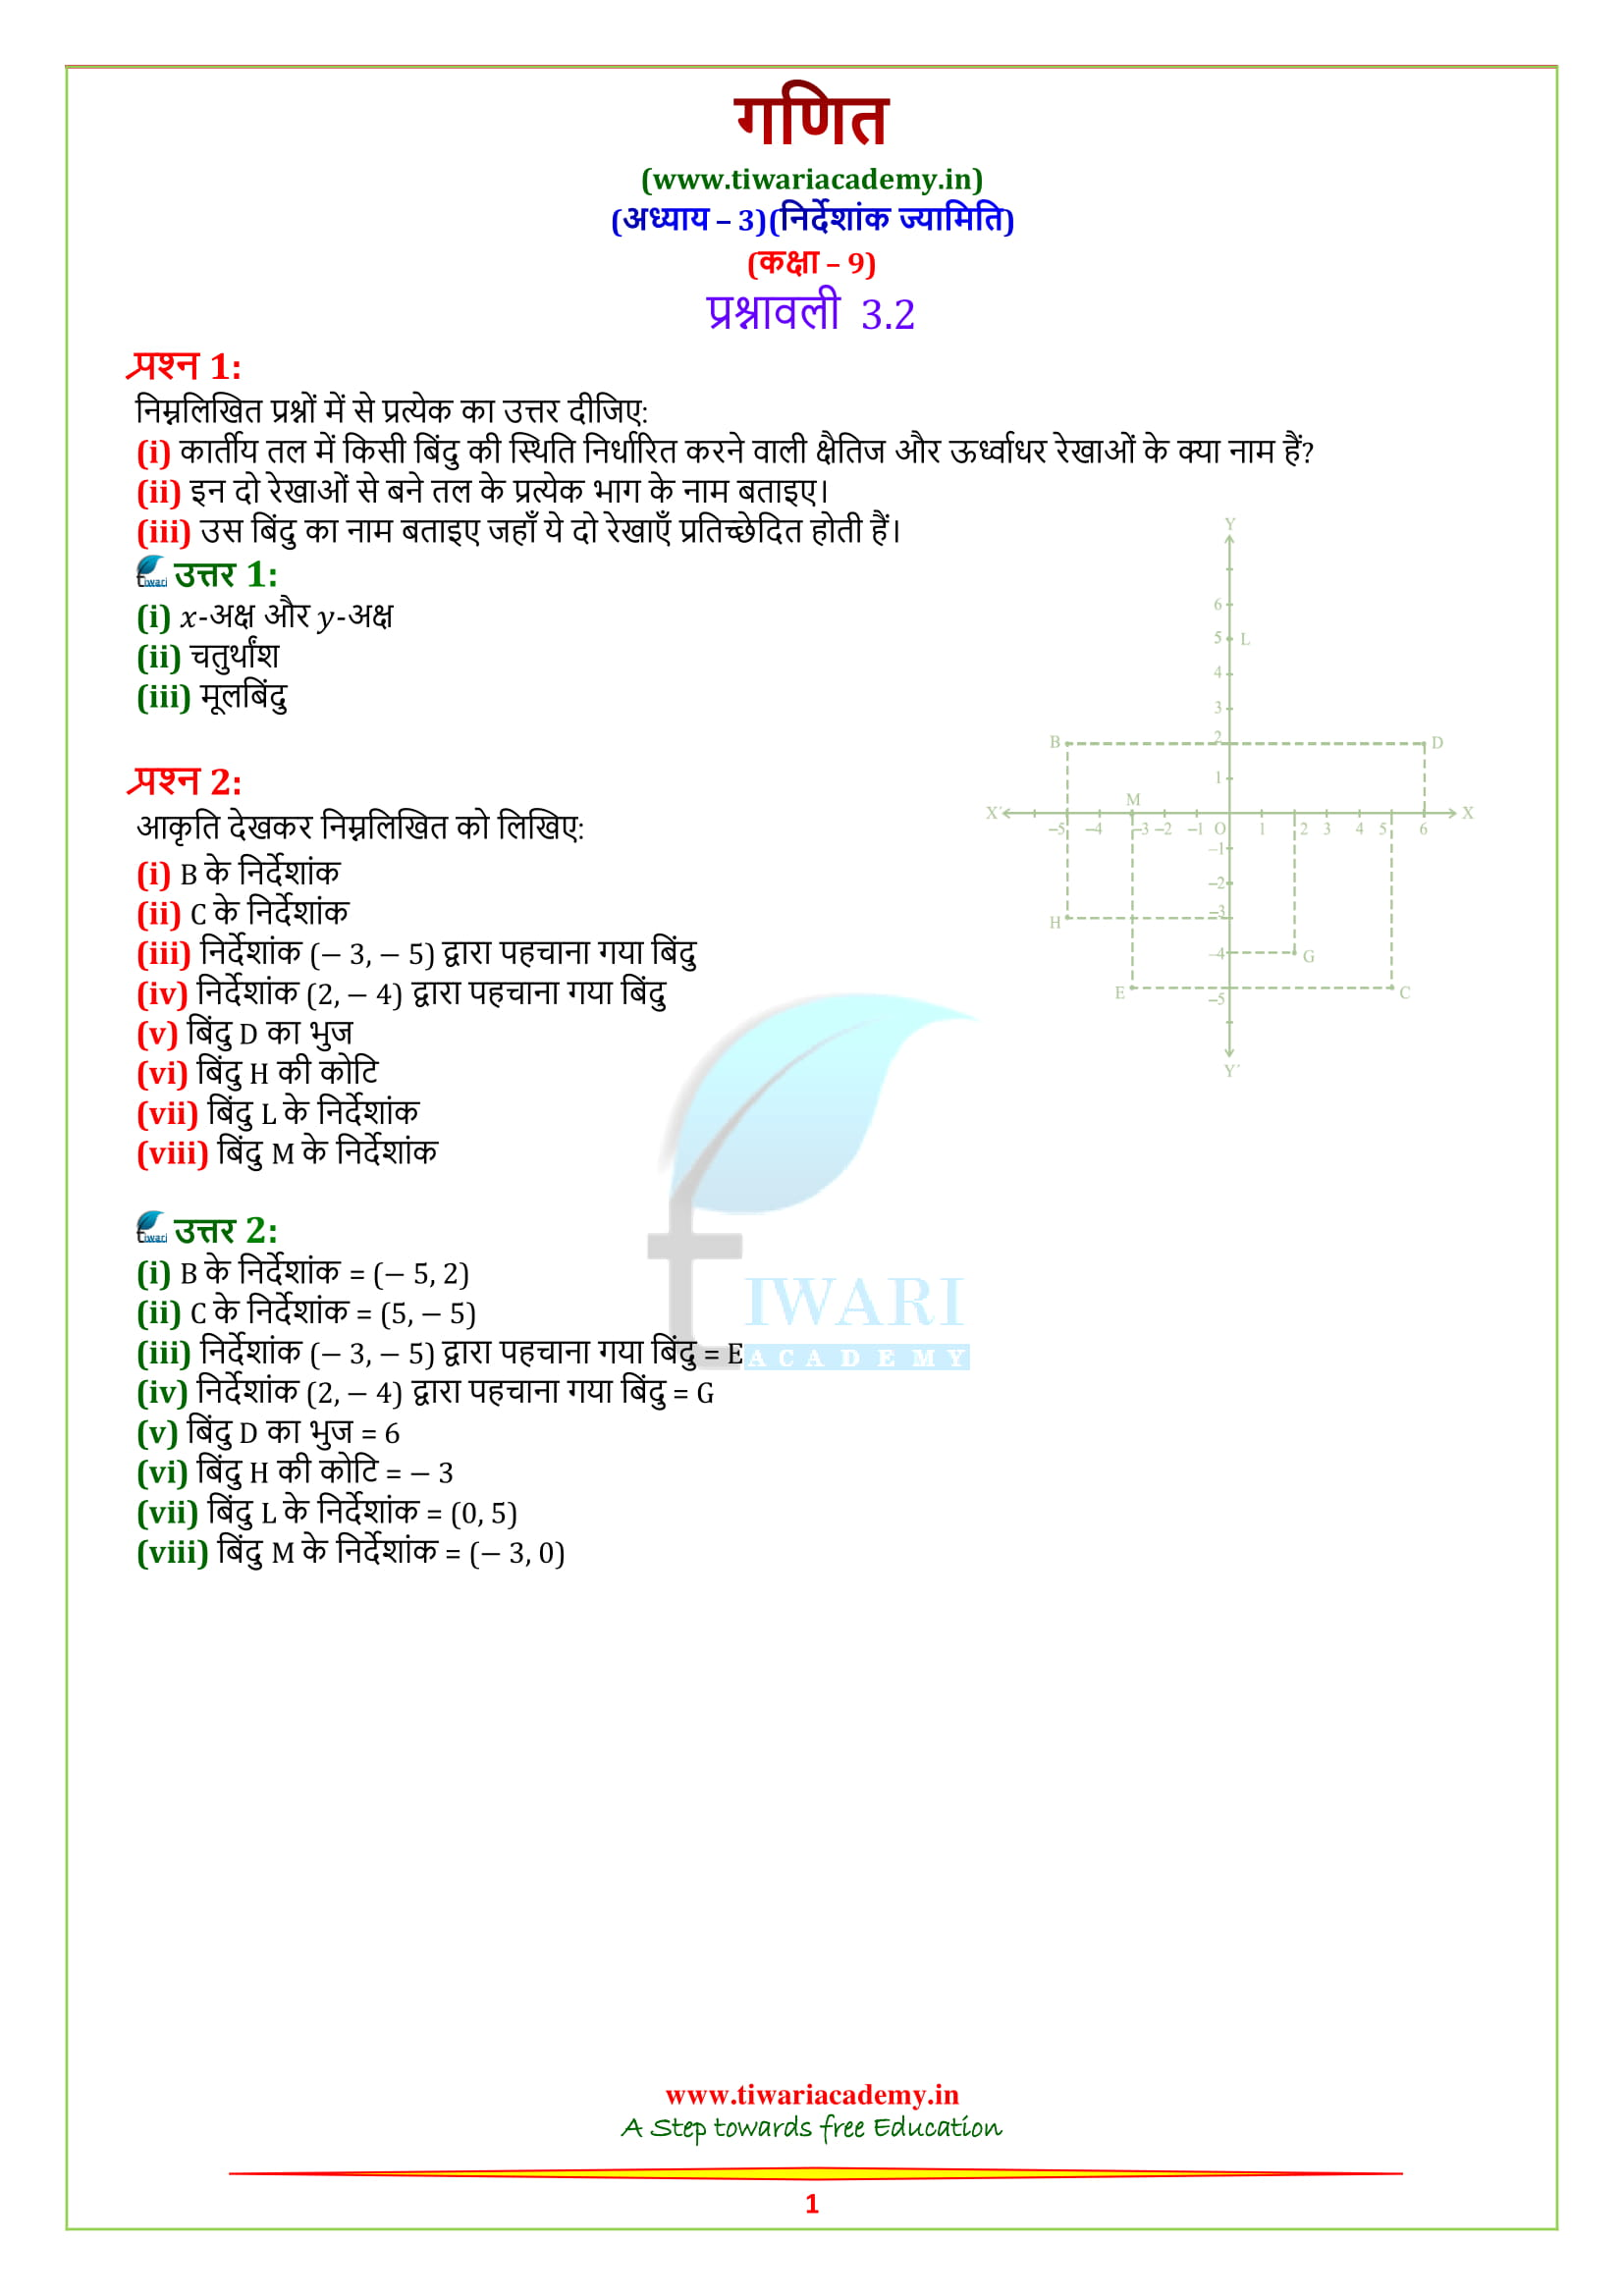 9 Maths Exercise 3.2 solutions in hindi